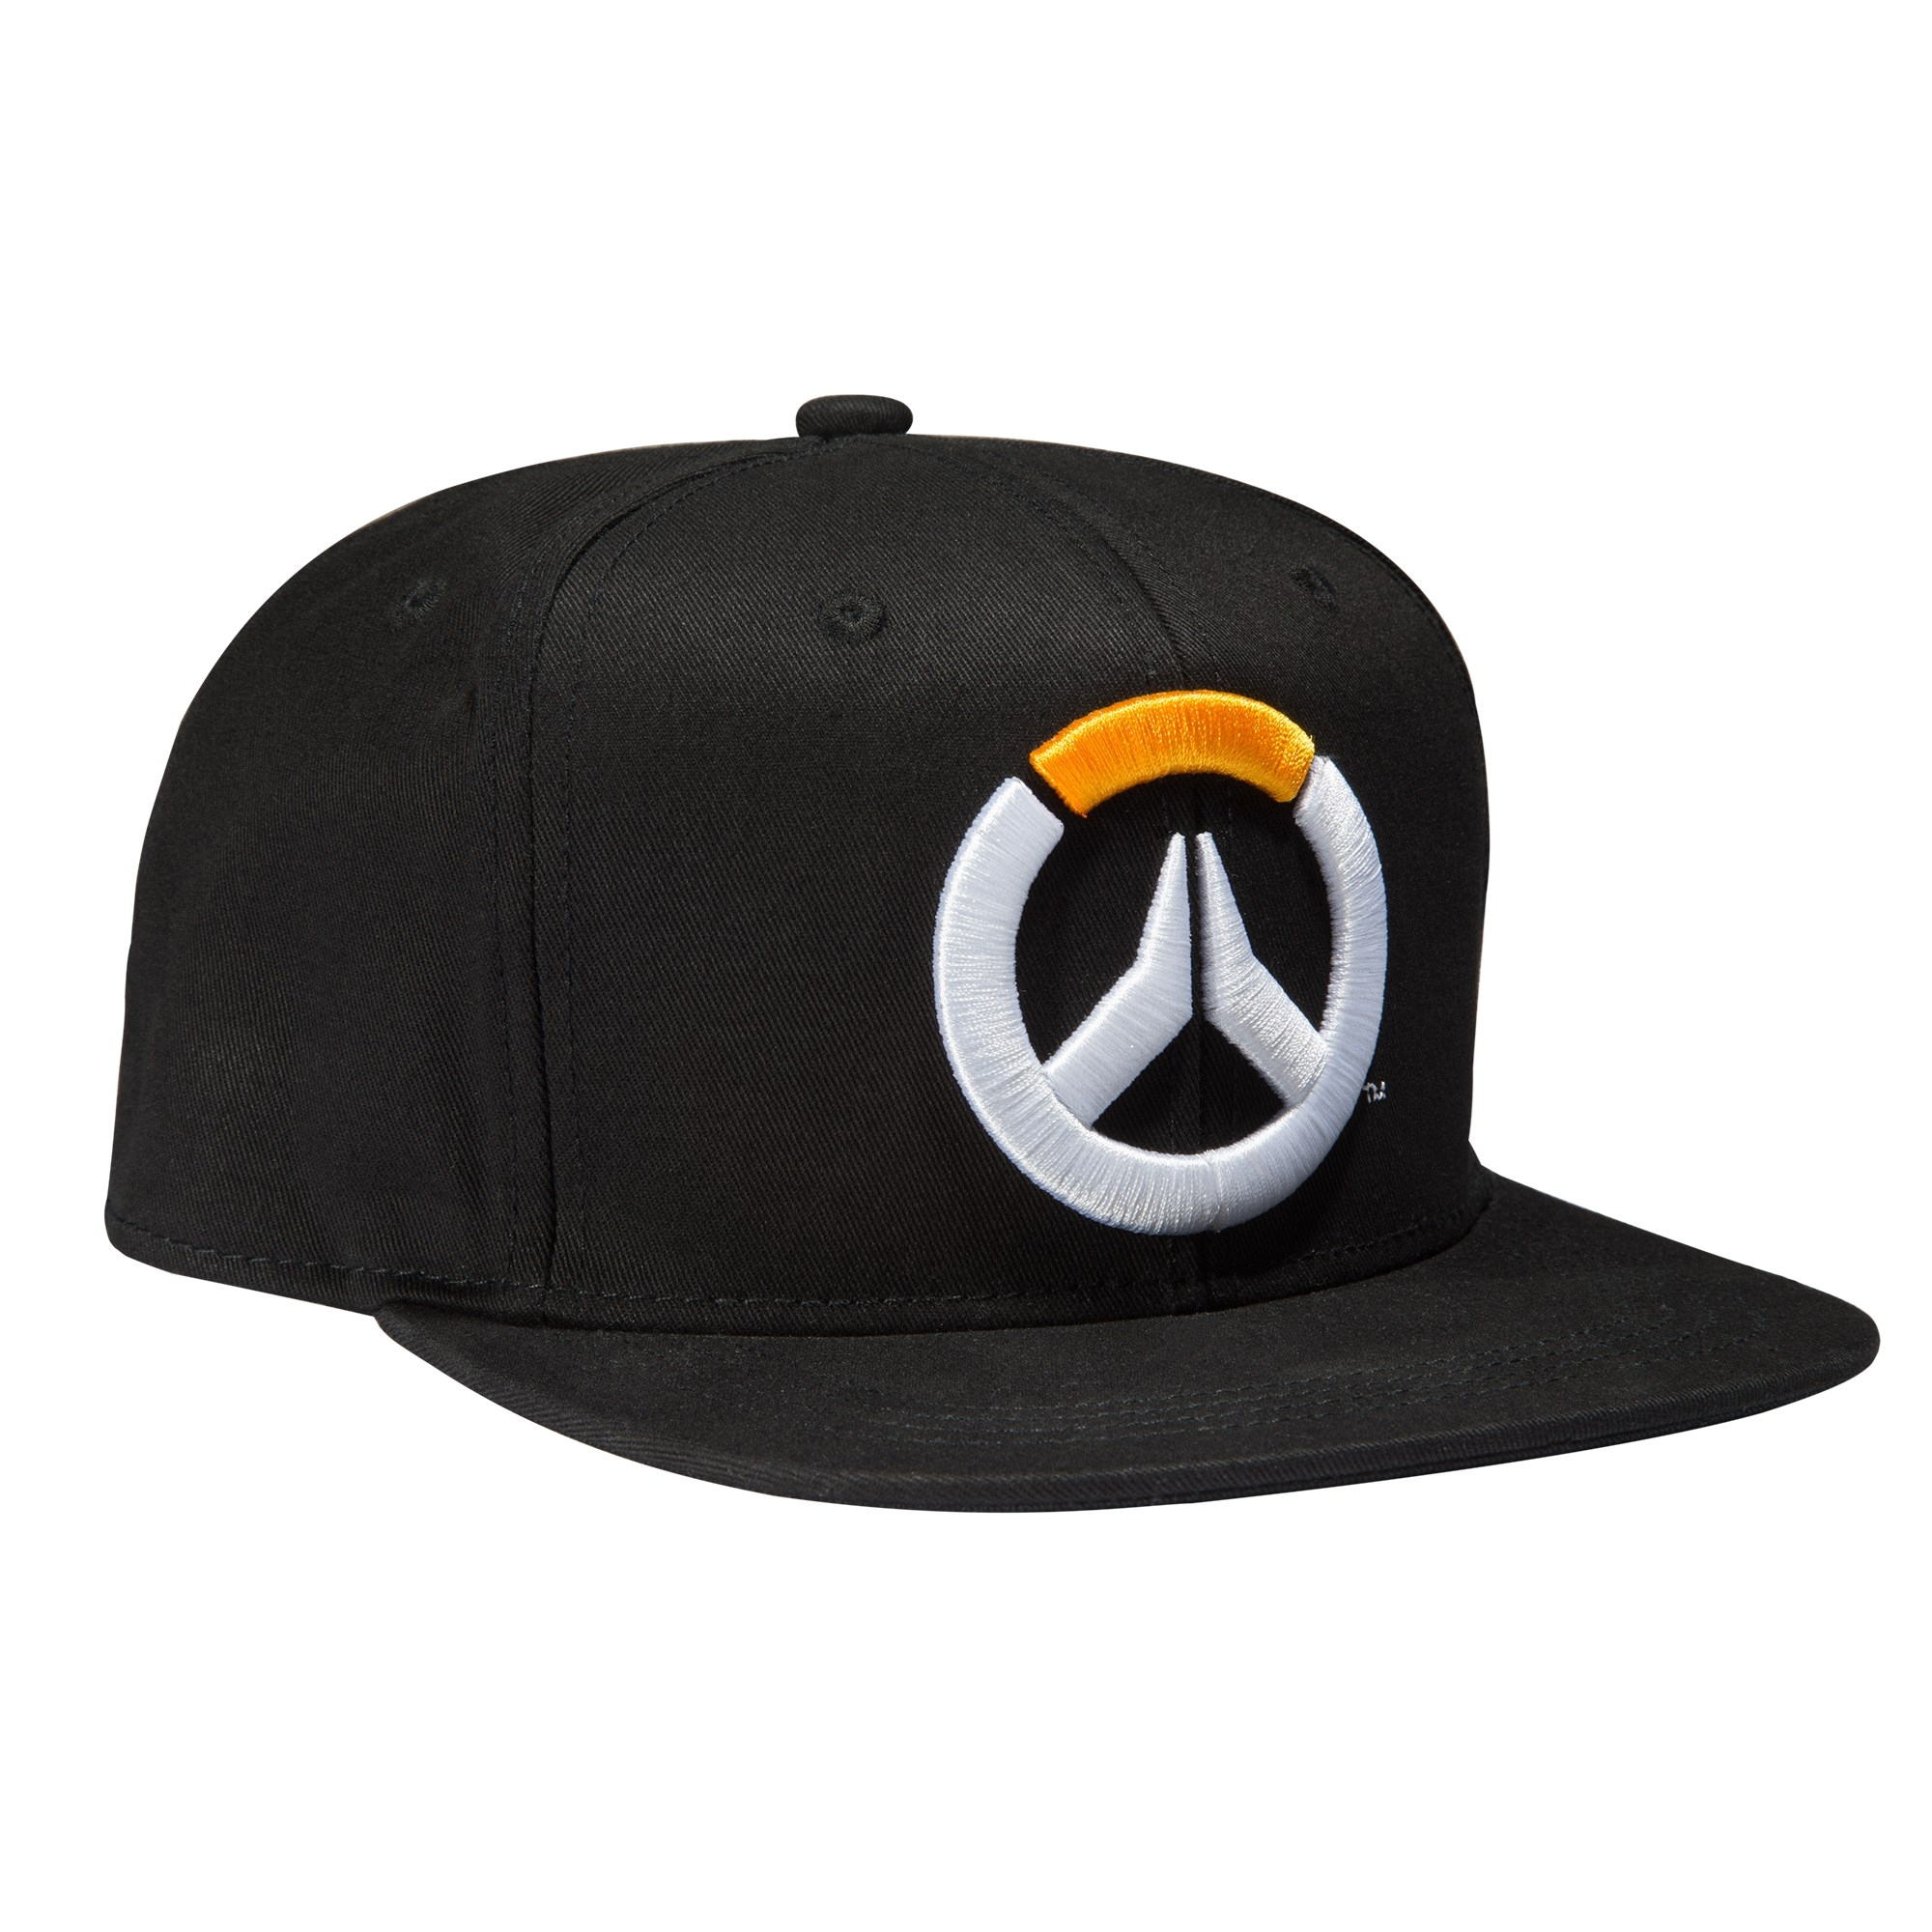 Photograph: Overwatch Frenetic Snapback Cap